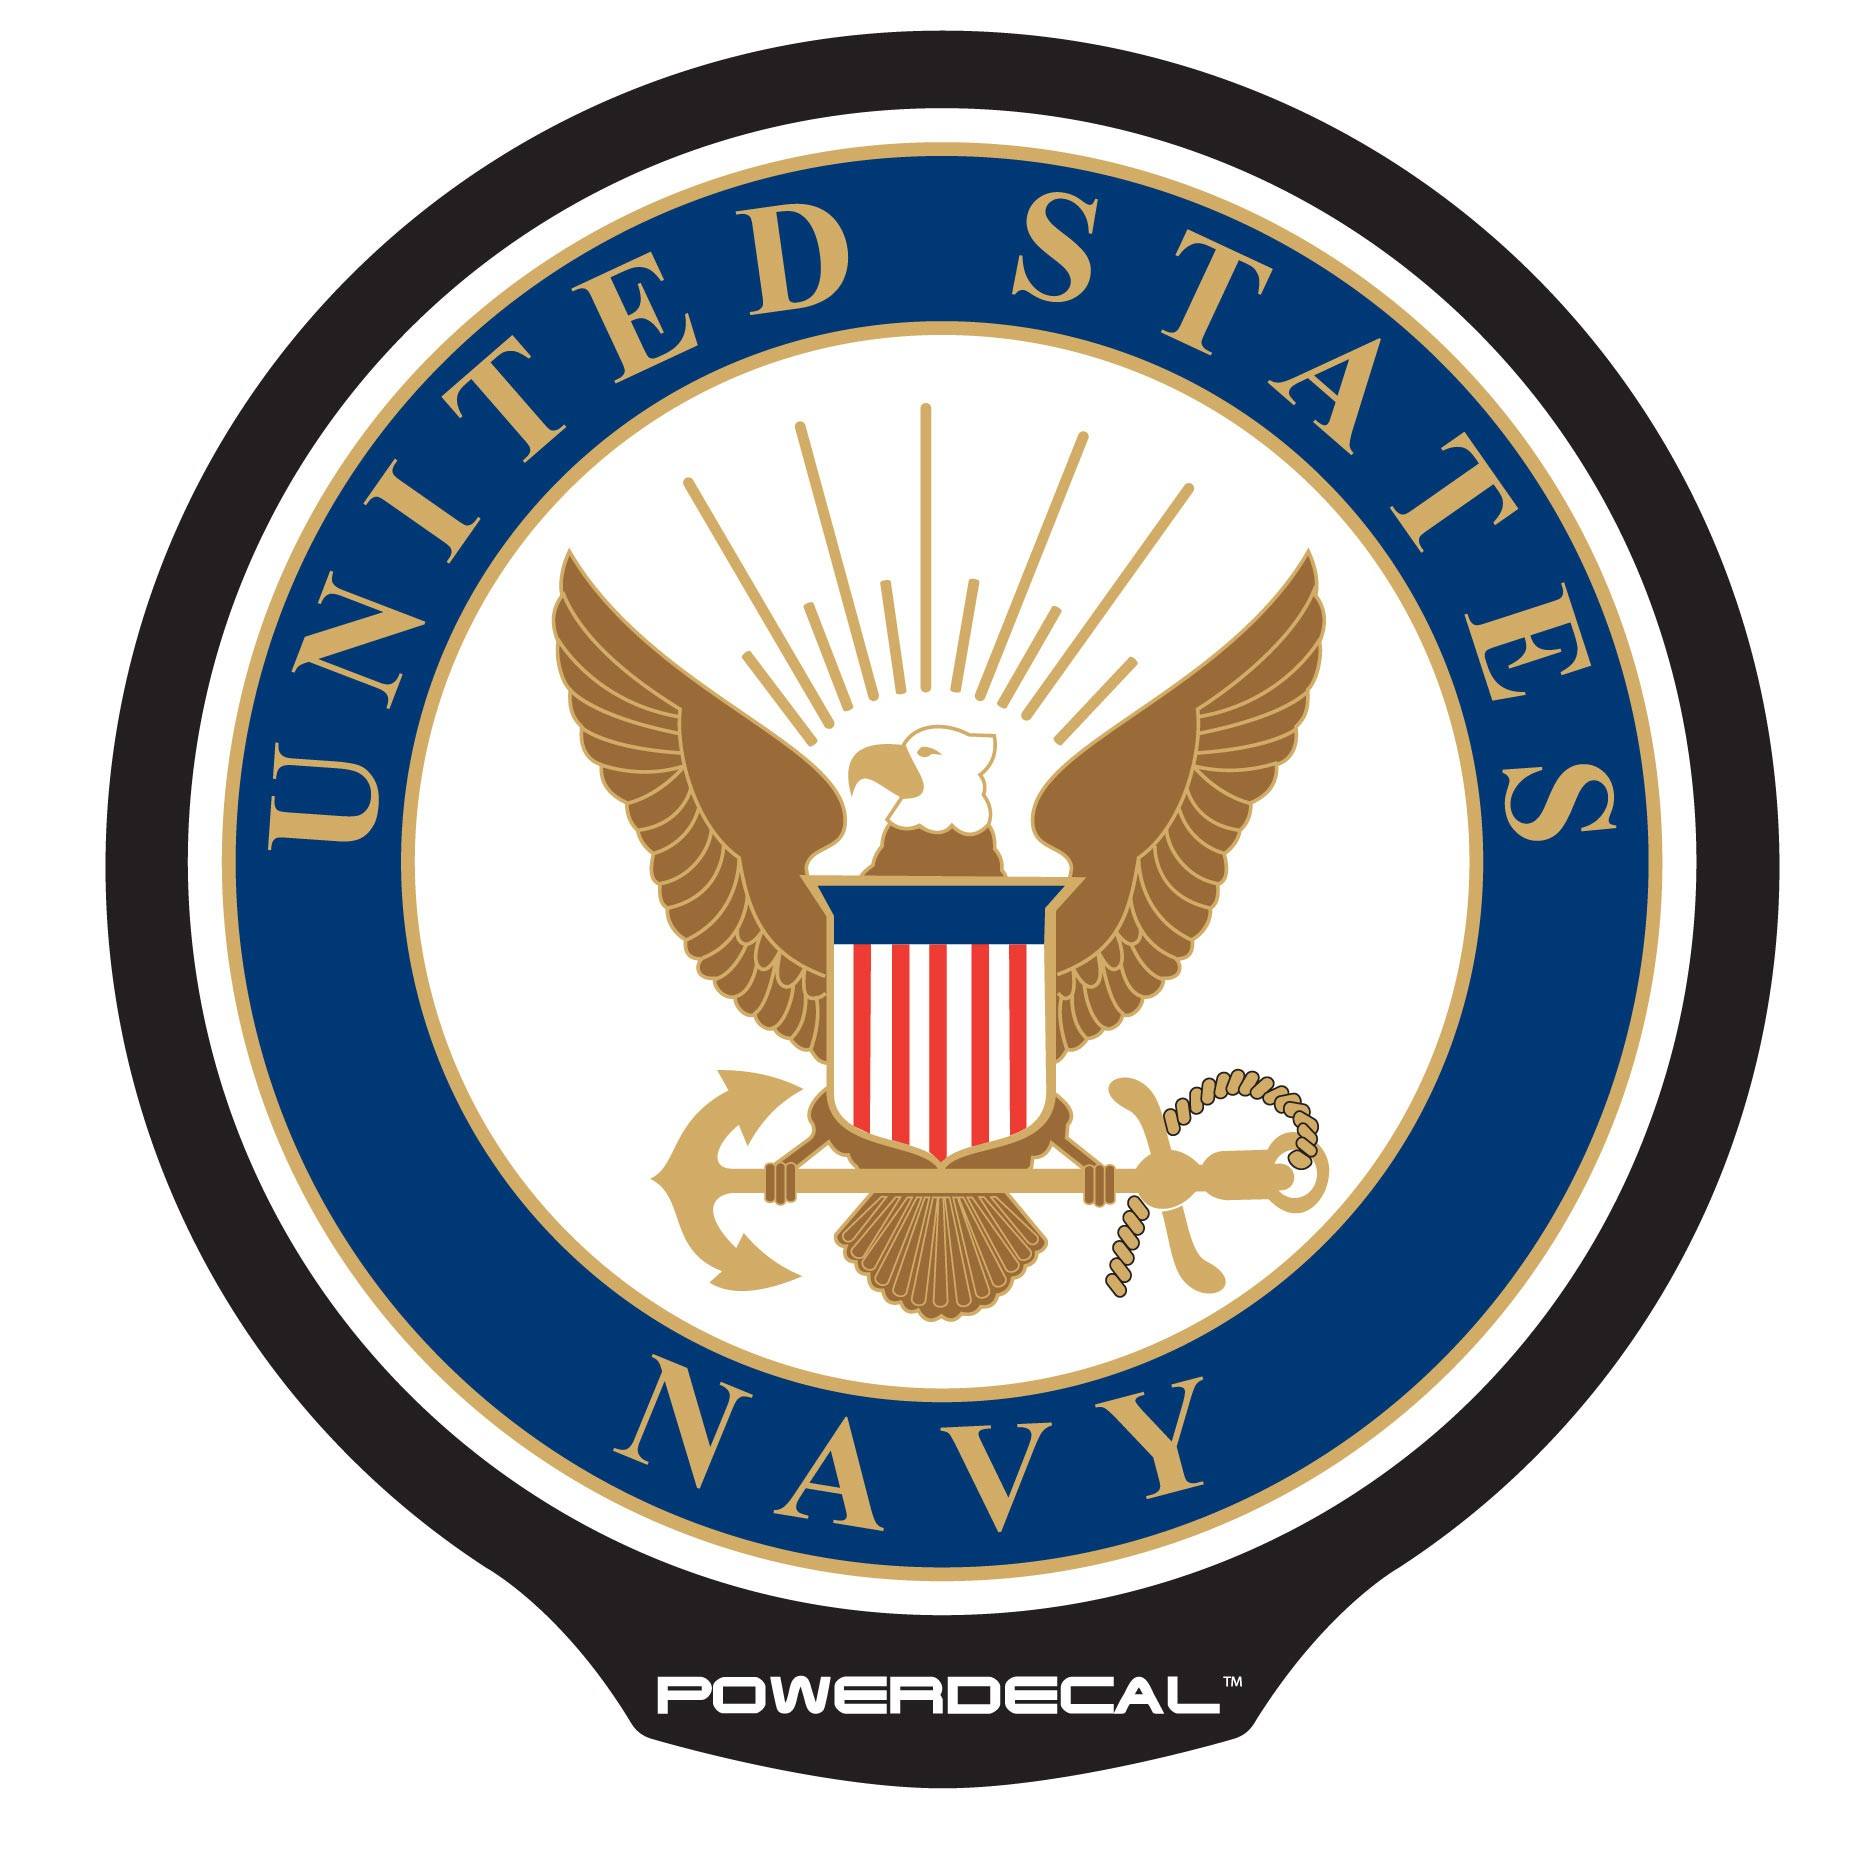 Free Us Navy Logo, Download Free Clip Art, Free Clip Art on.